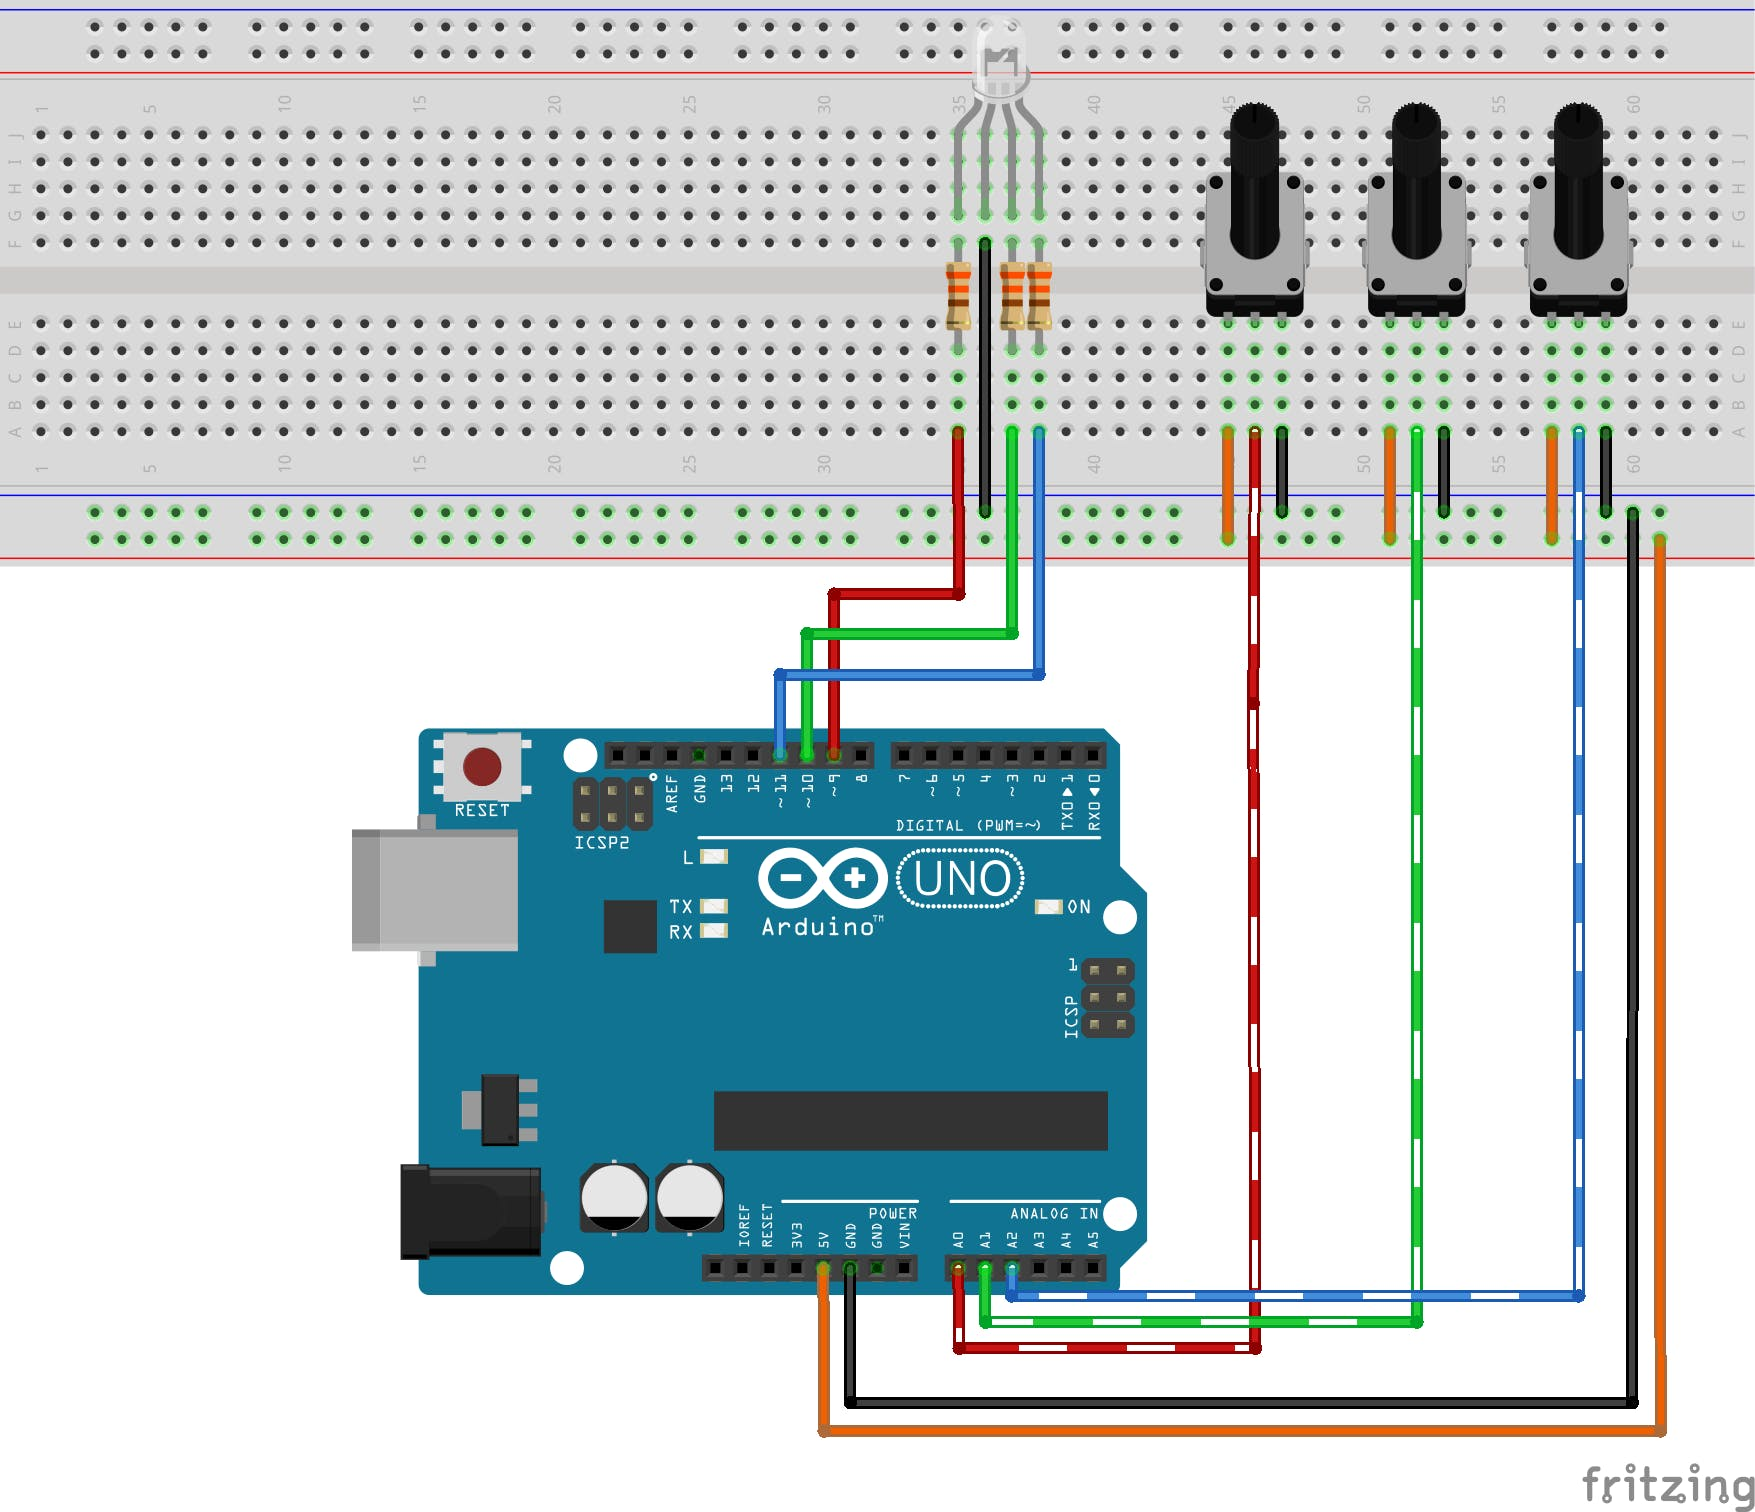 Full circuit breadboard view